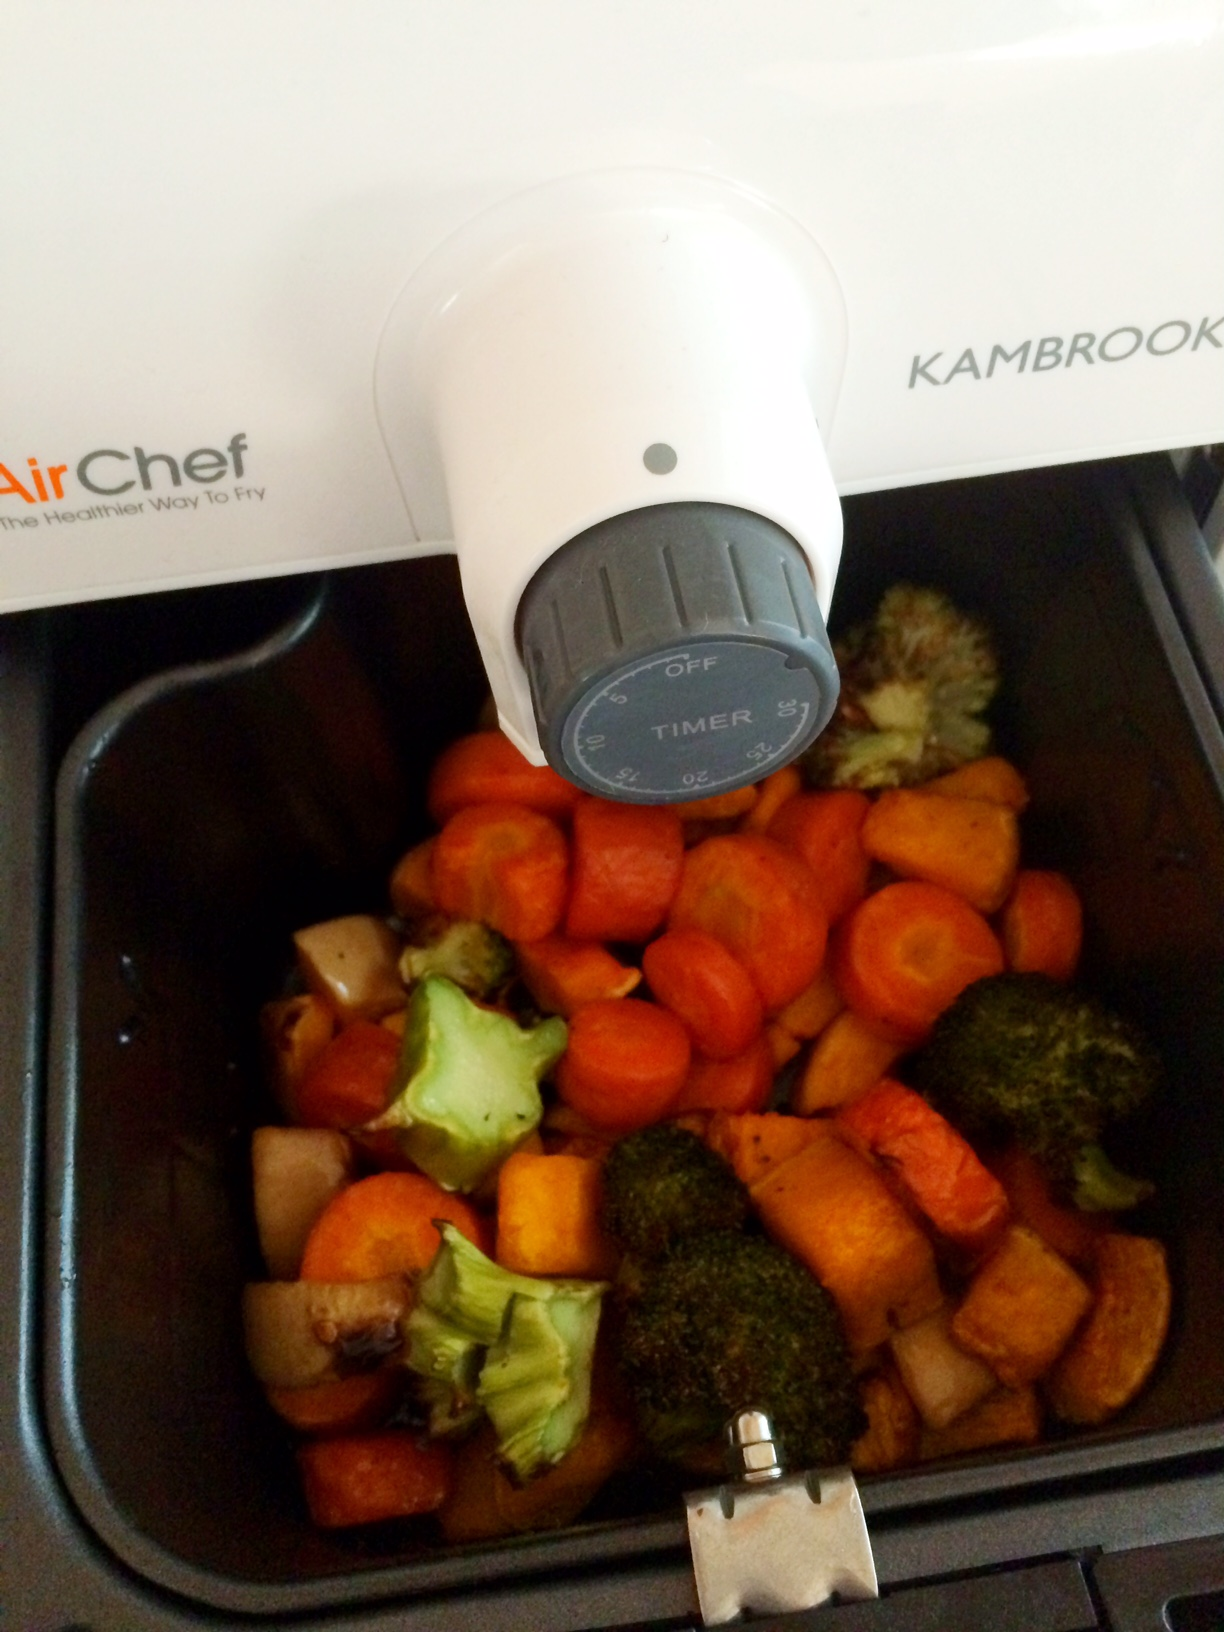 kambrook air chef air fryer oven review and recipes cooking for busy mums. Black Bedroom Furniture Sets. Home Design Ideas